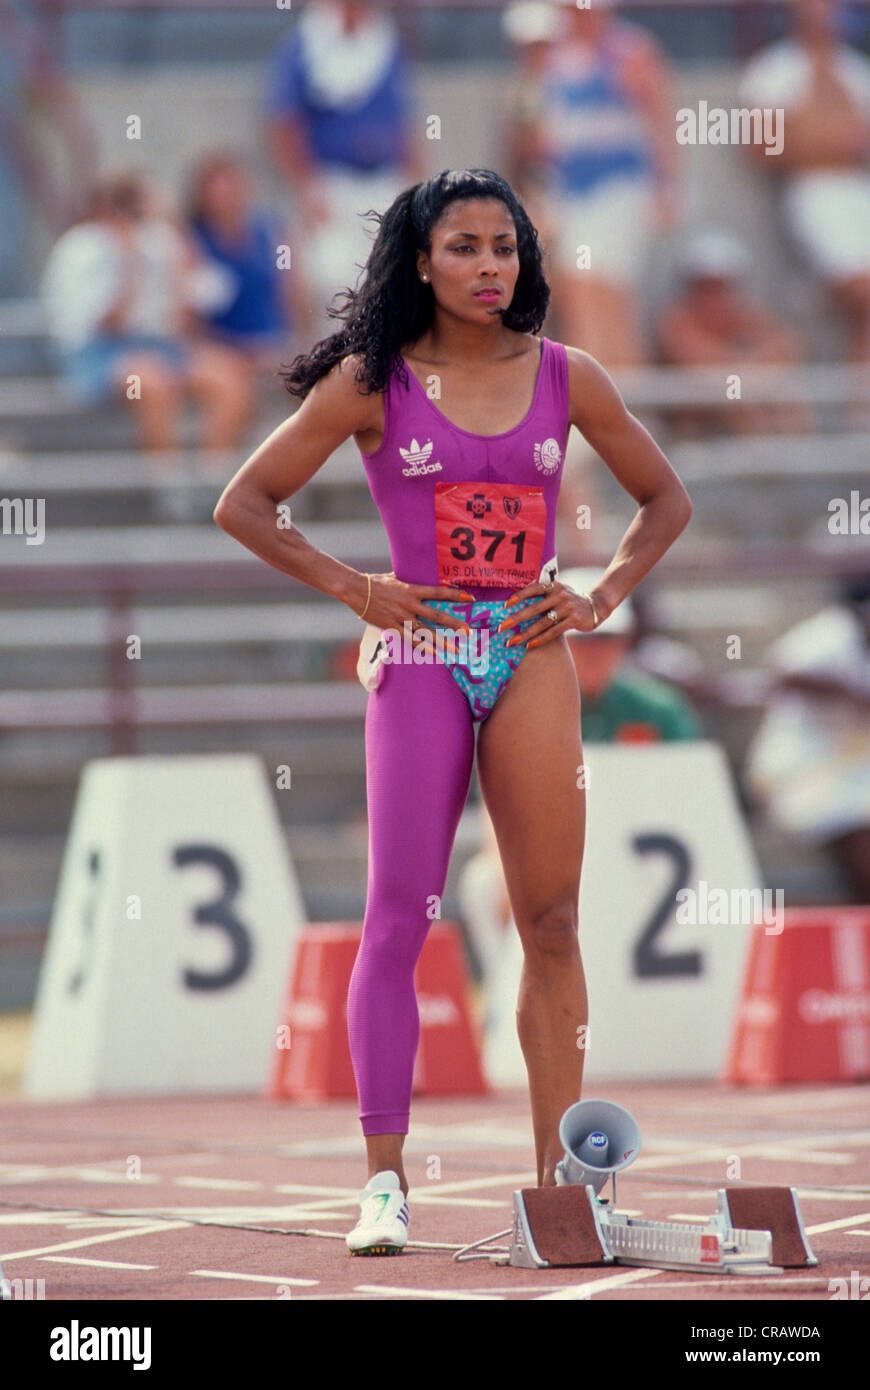 florence-griffith-joyner-competing-at-the-1988-us-olympic-track-and-CRAWDA.jpg